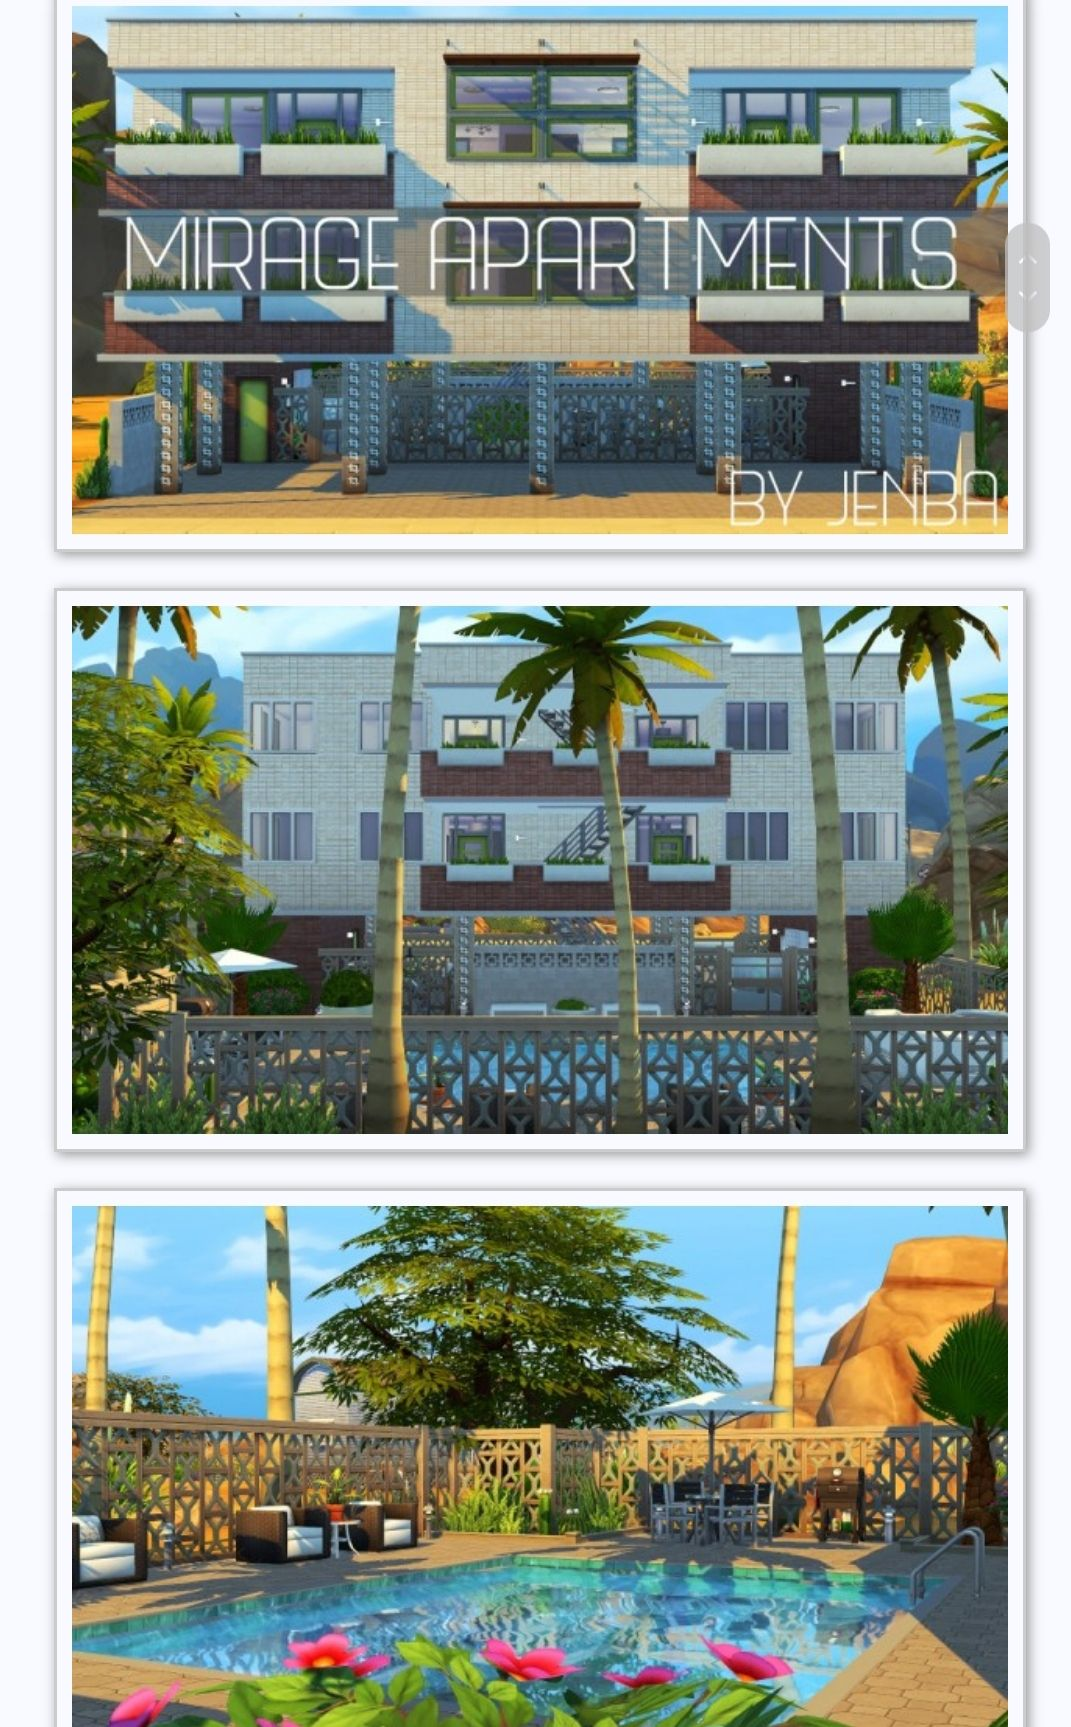 Pin by Whitney on SIMS 4 BUILDING INSPO Sims 4, Sims 4